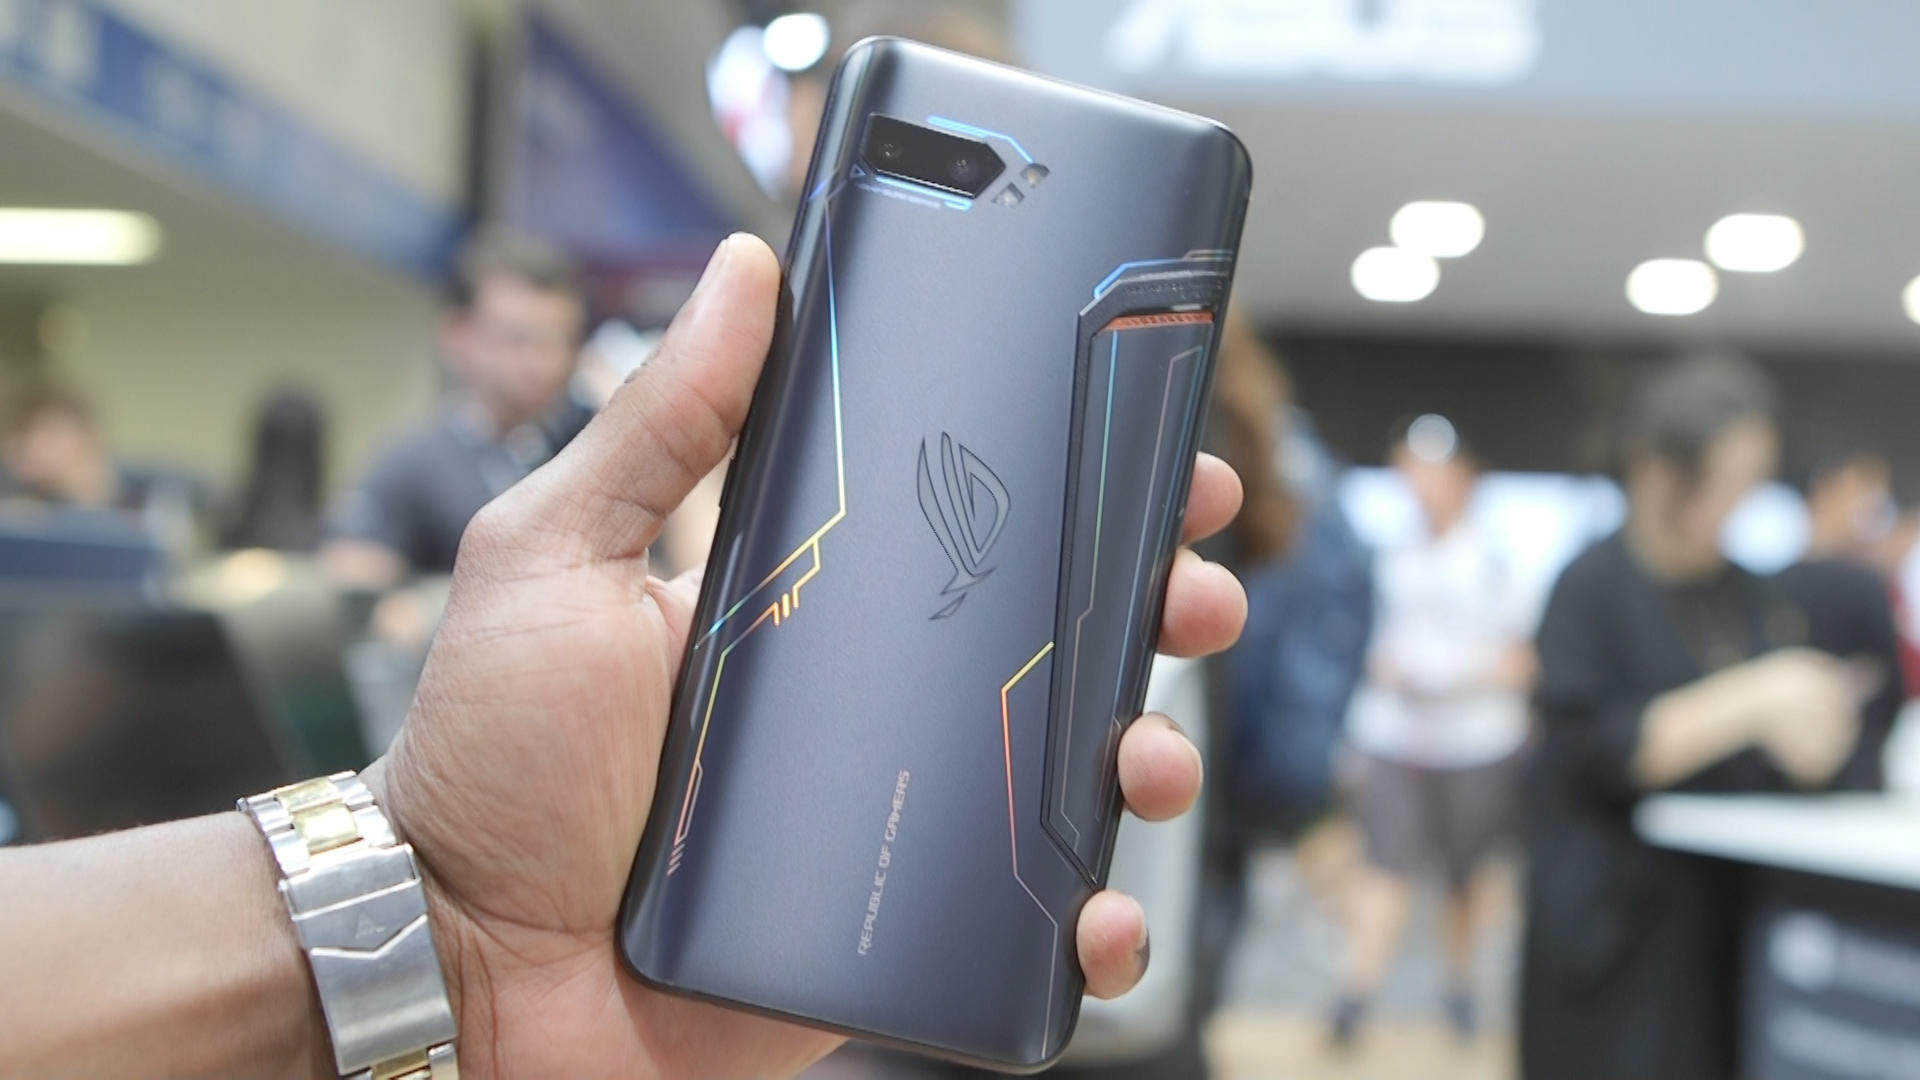 Video: Asus ROG Phone 2 has the first 120Hz OLED screen